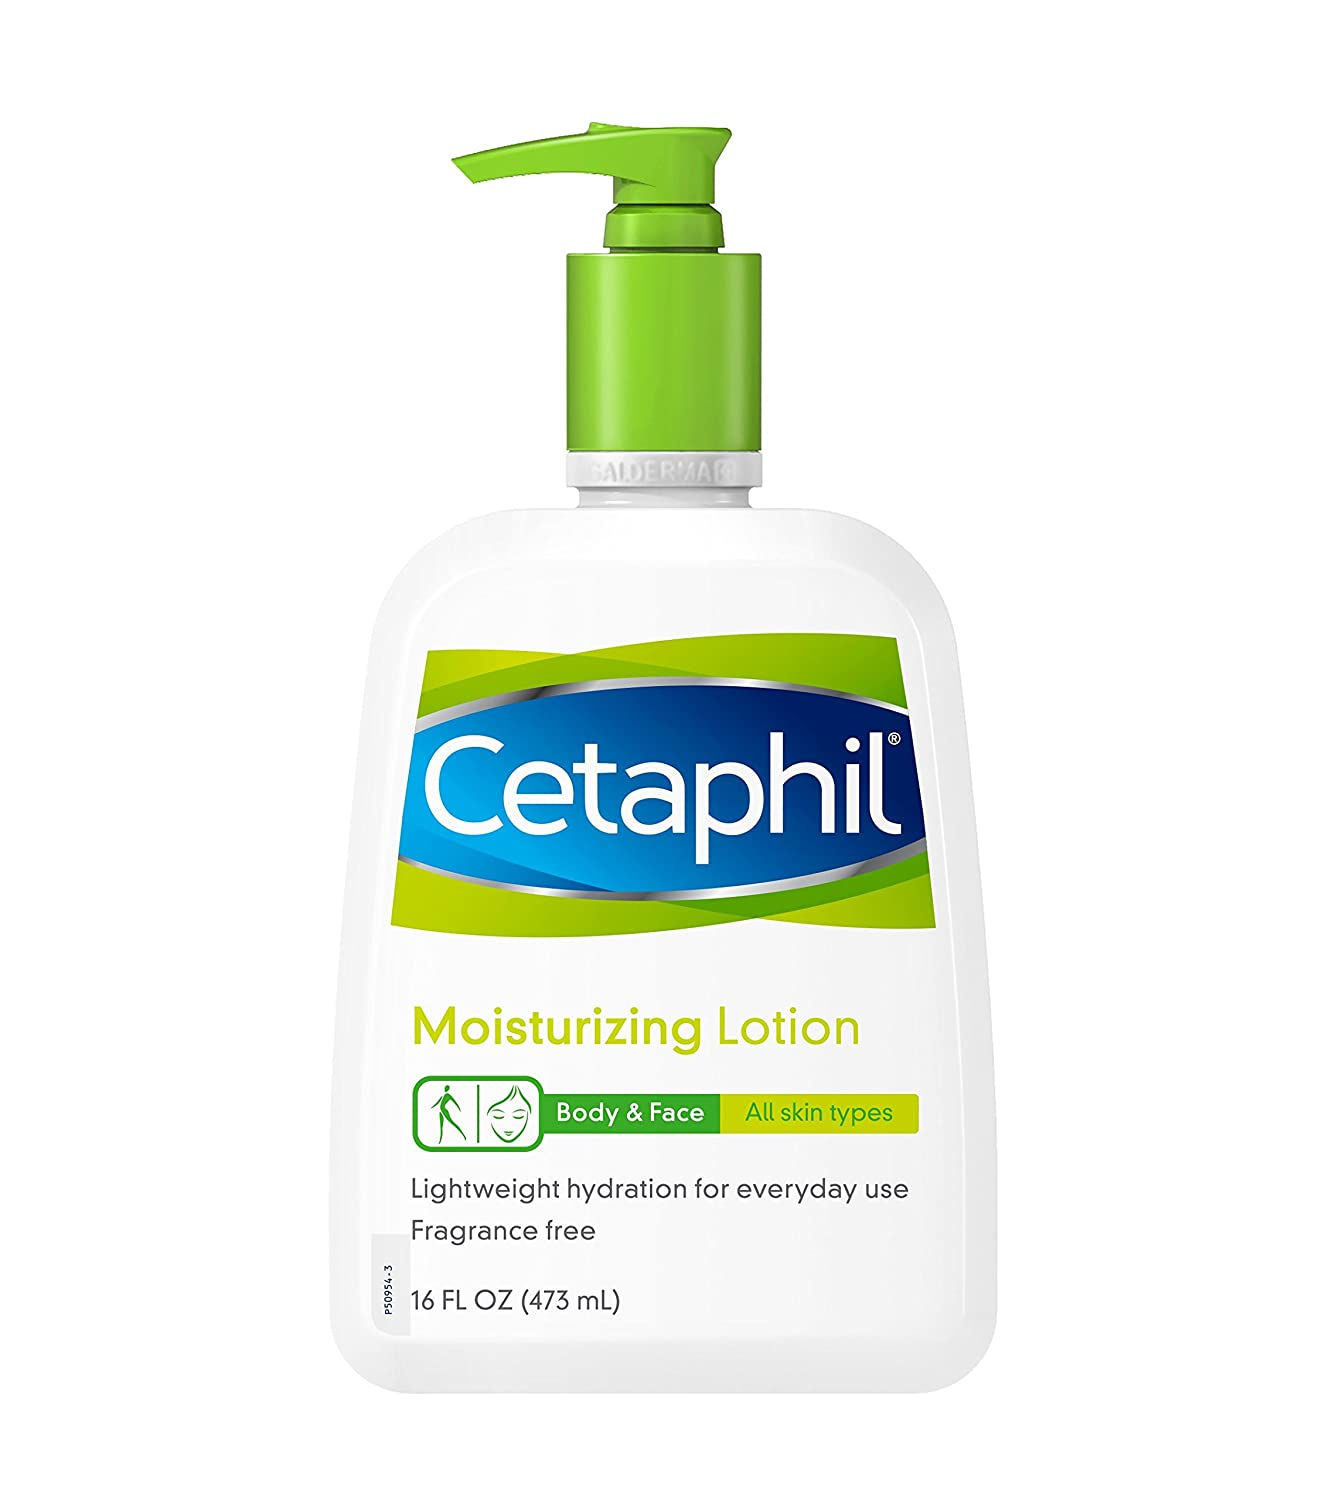 Cetaphil Moisturizing Lotion for All Skin Types 16 Fl Oz (Pack of 1)